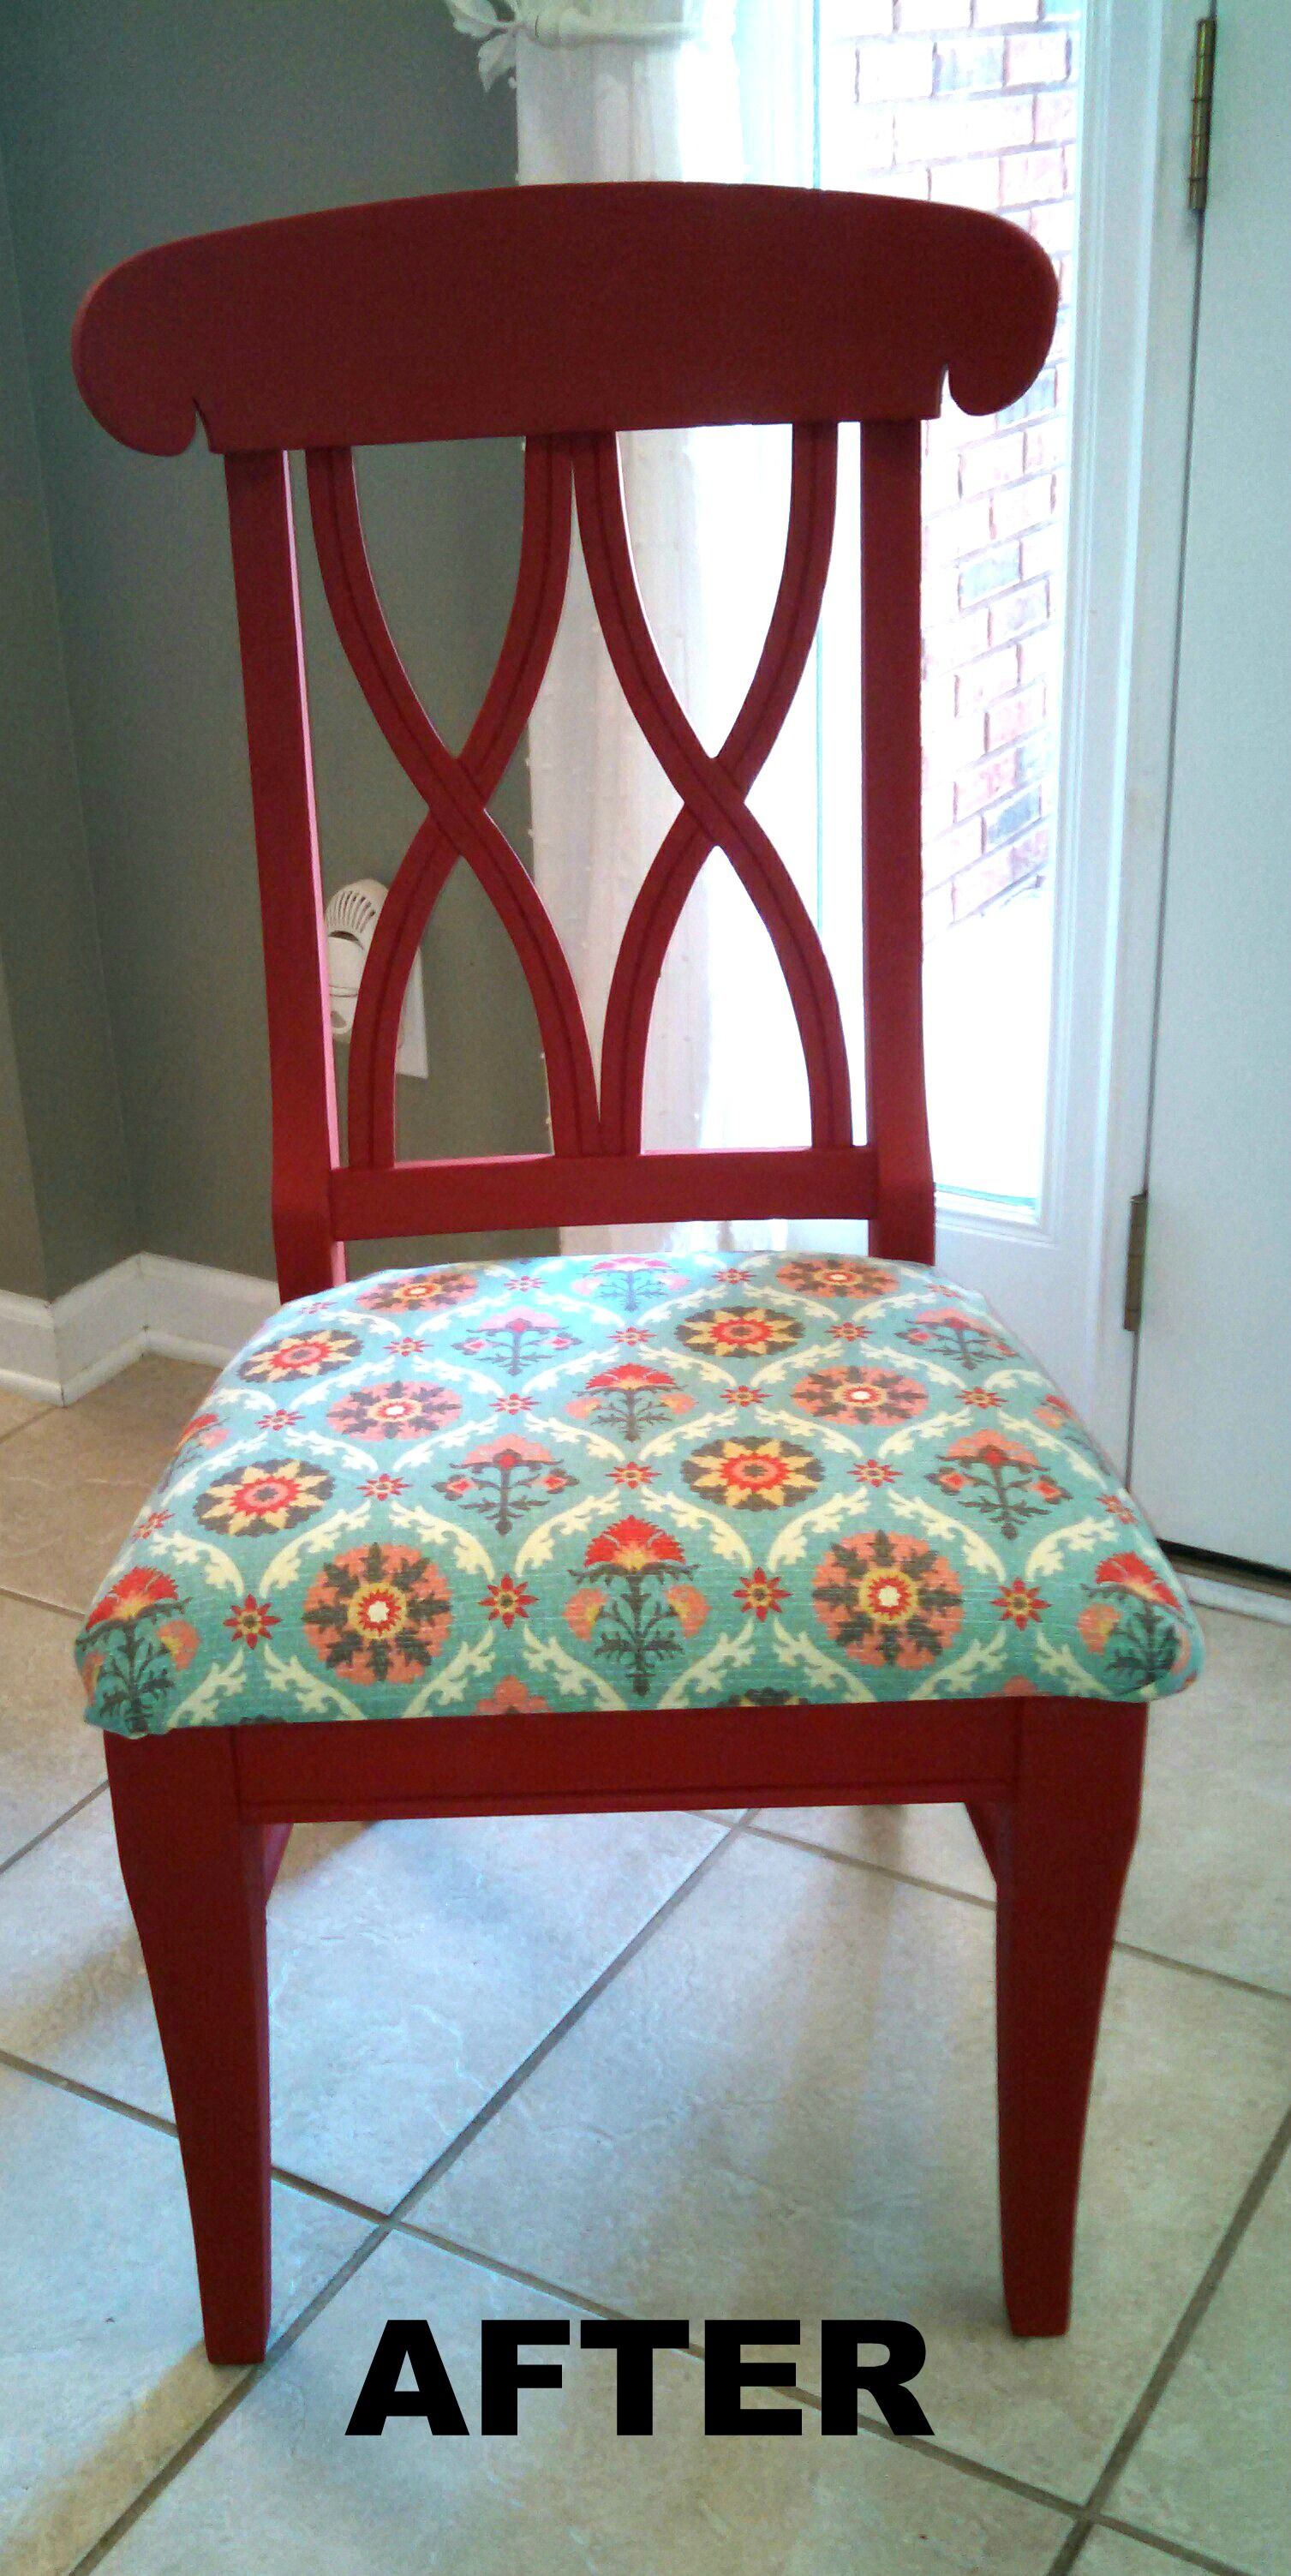 Upcycling my kitchen table and chairs....